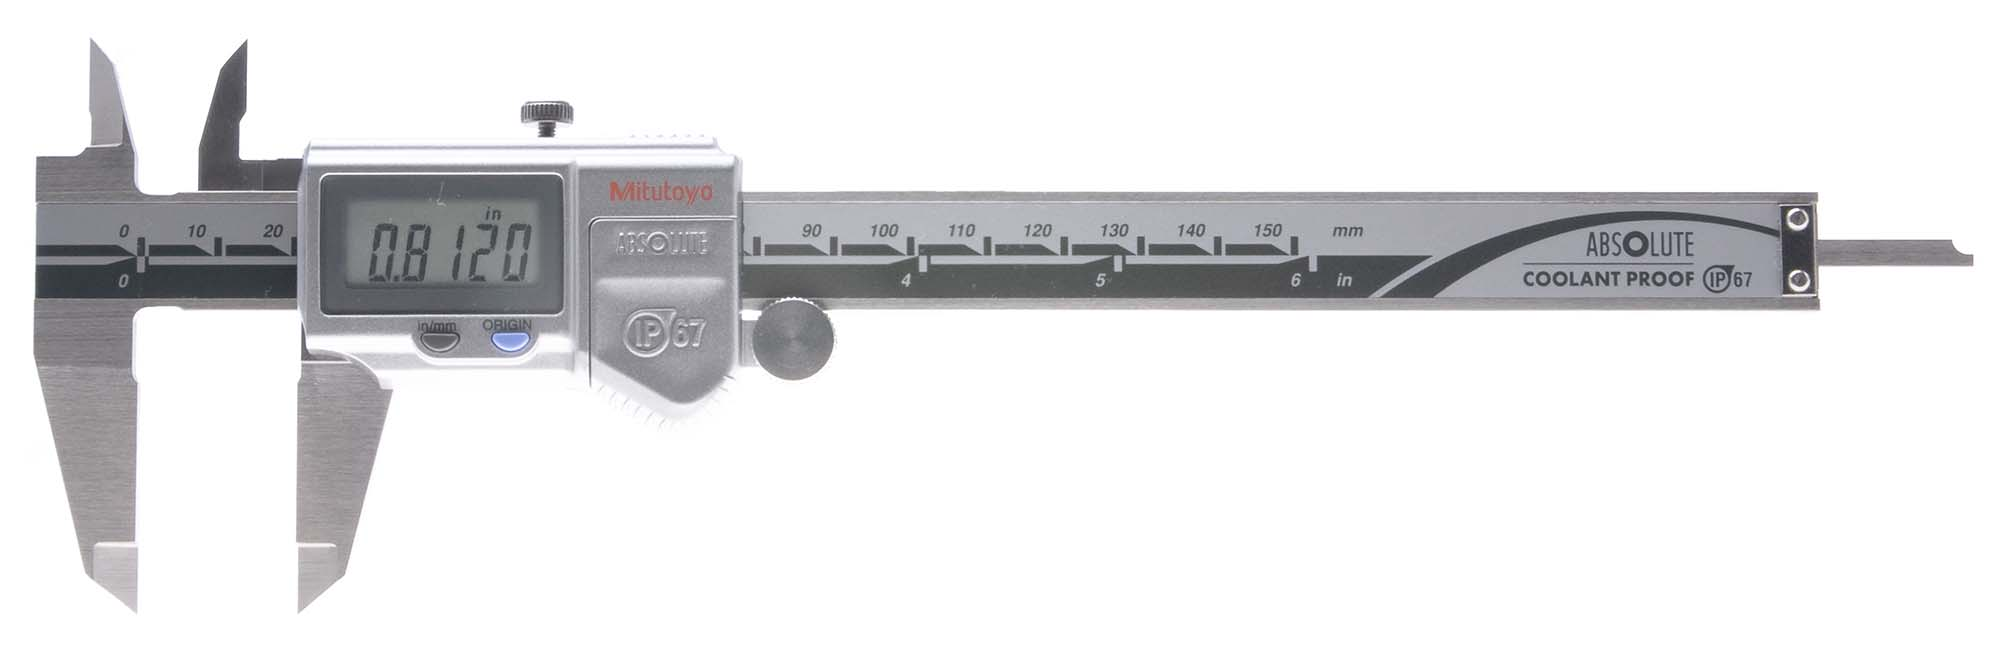 "Mitutoyo 500-754 12"" Coolant-Proof Electronic Caliper"